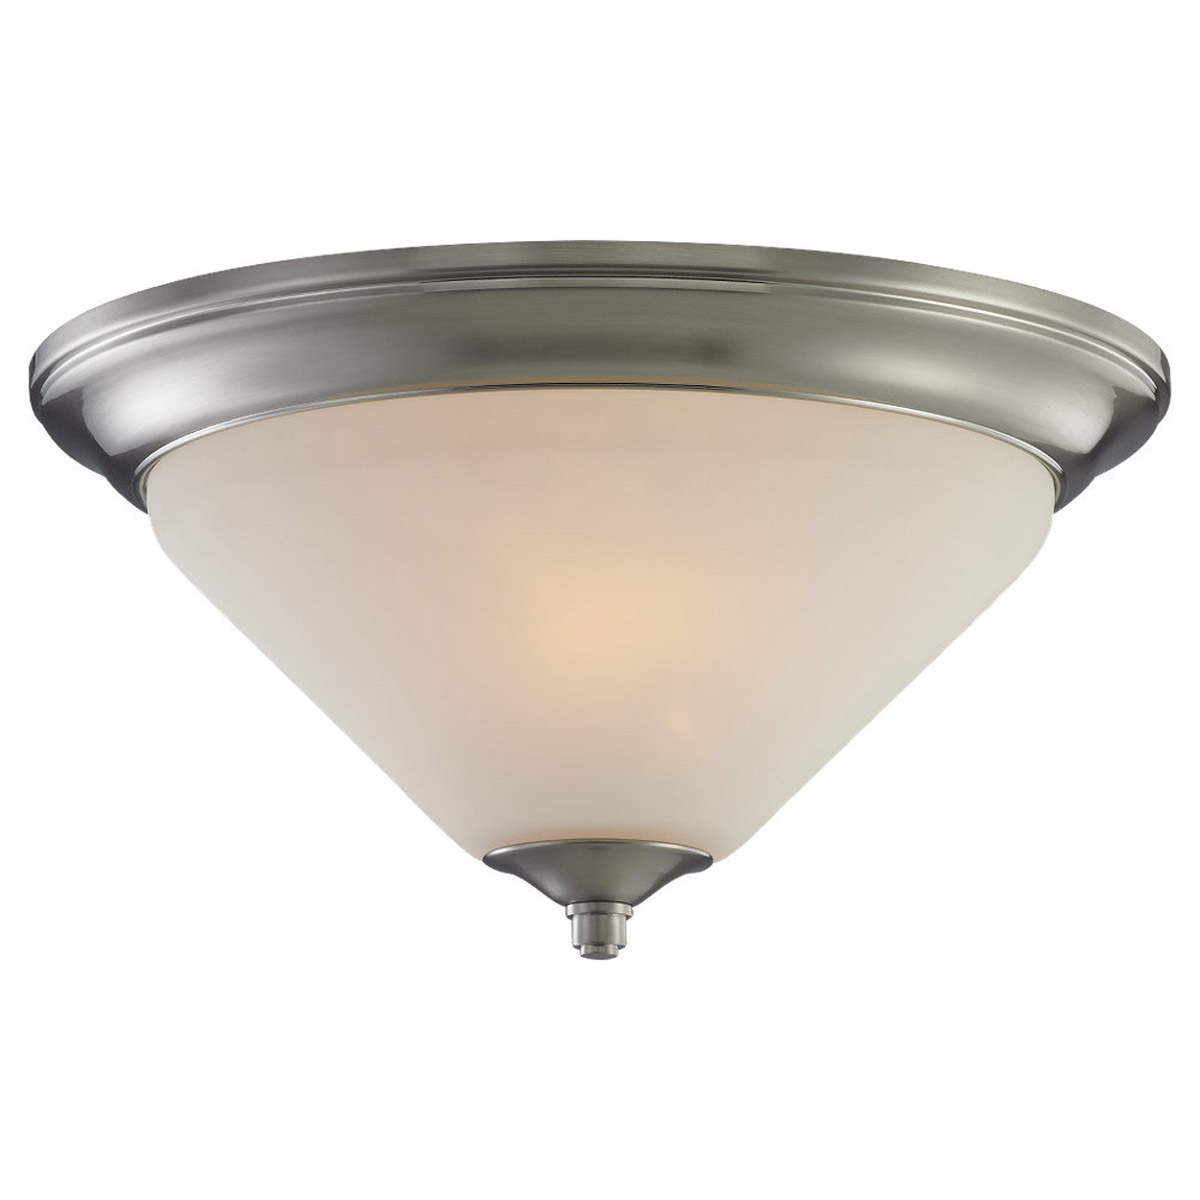 Sea Gull Lighting Belair 2 Light Flush Mount in Brushed Nickel 75790-962 photo